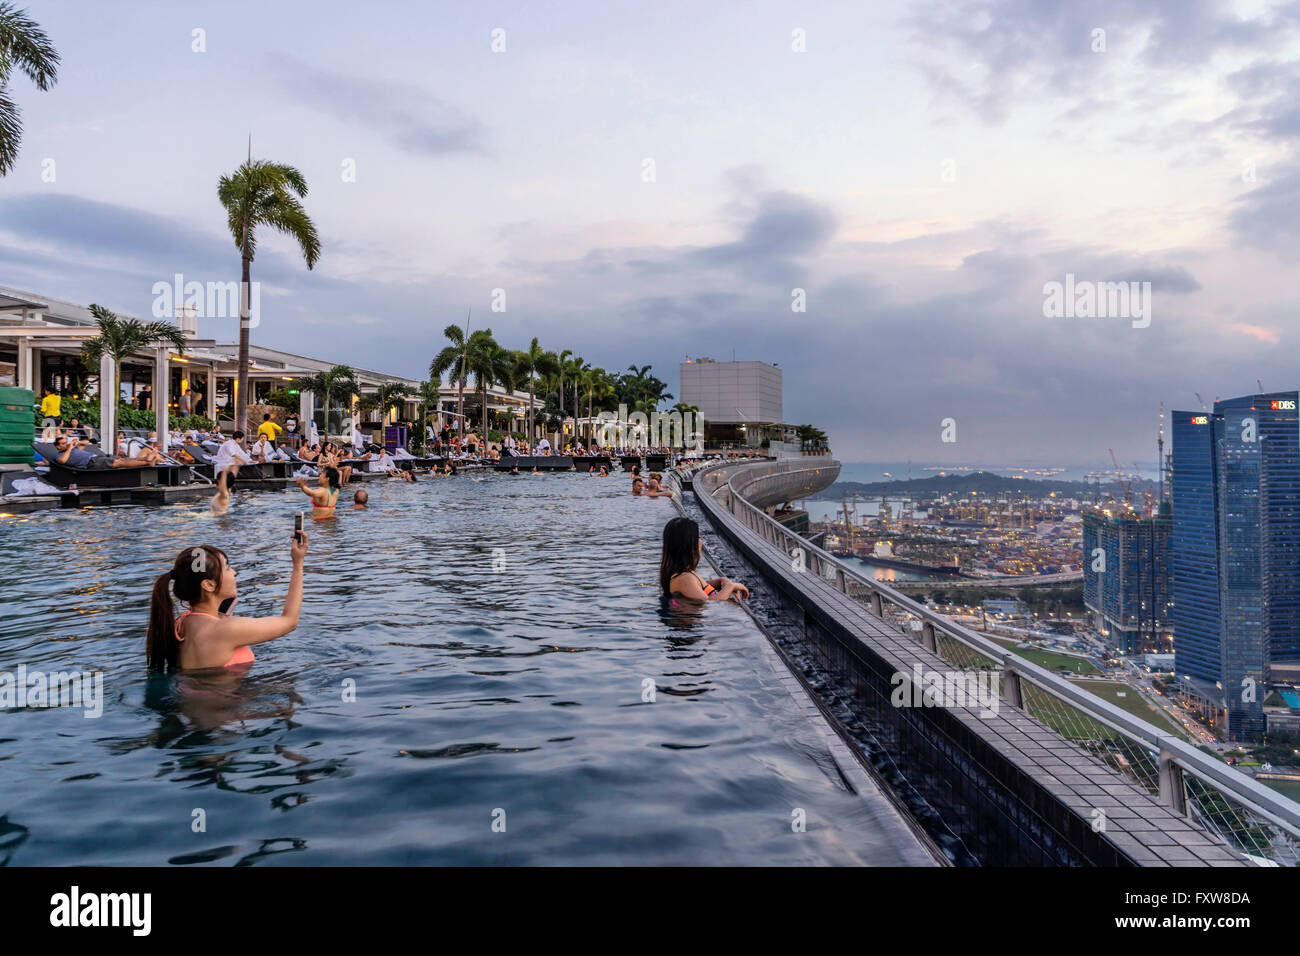 Marina Bay Sands Infinity Pool Roof Terasse Selfies Asian Stock Photo Royalty Free Image